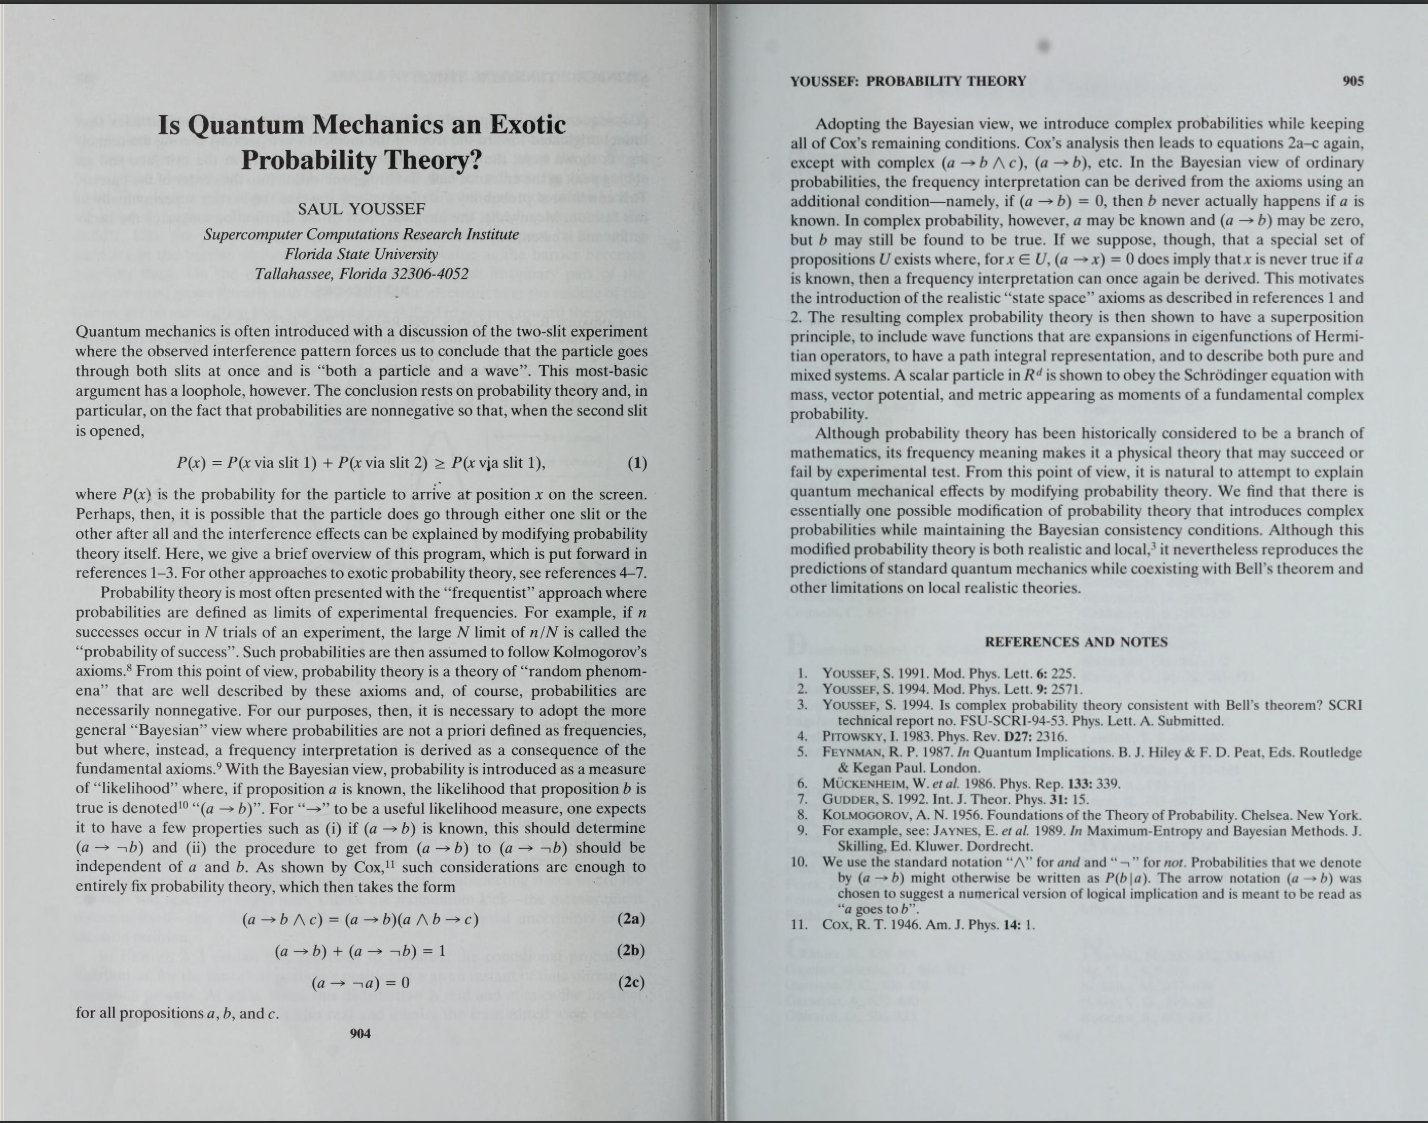 Exotic Probability Theories and Quantum Mechanics References